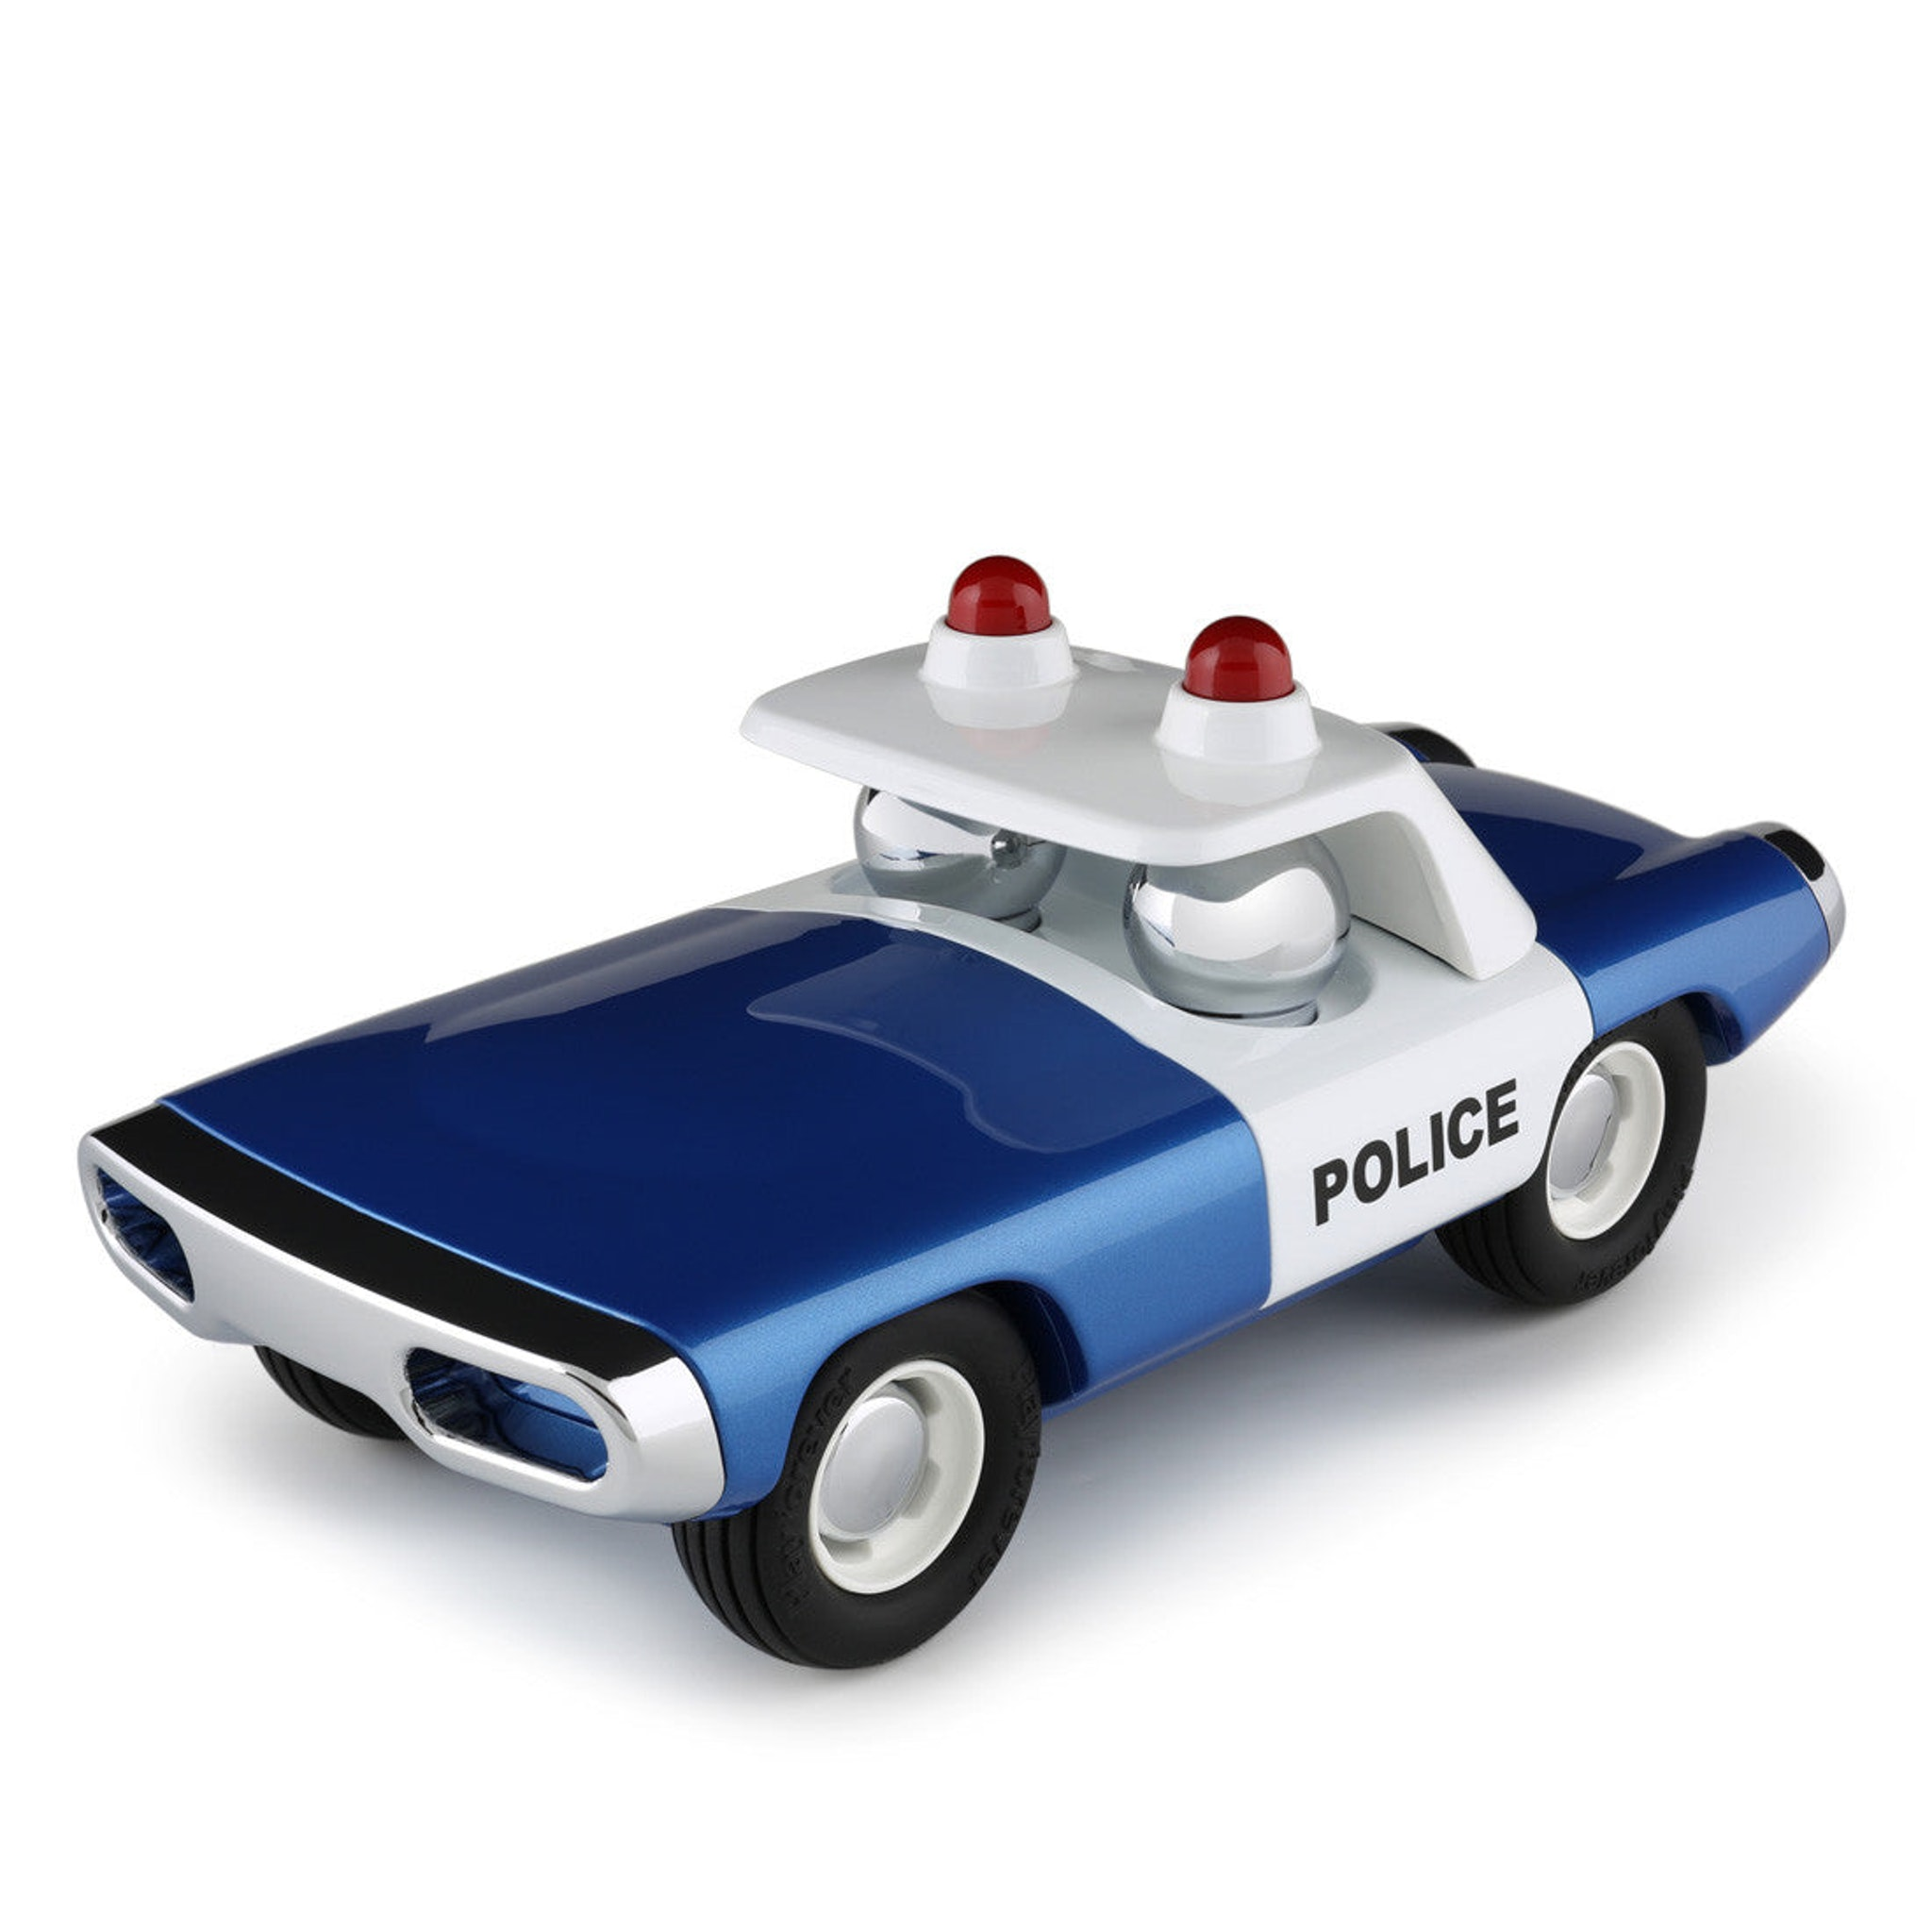 Maverick Police Car by Julian Meagher